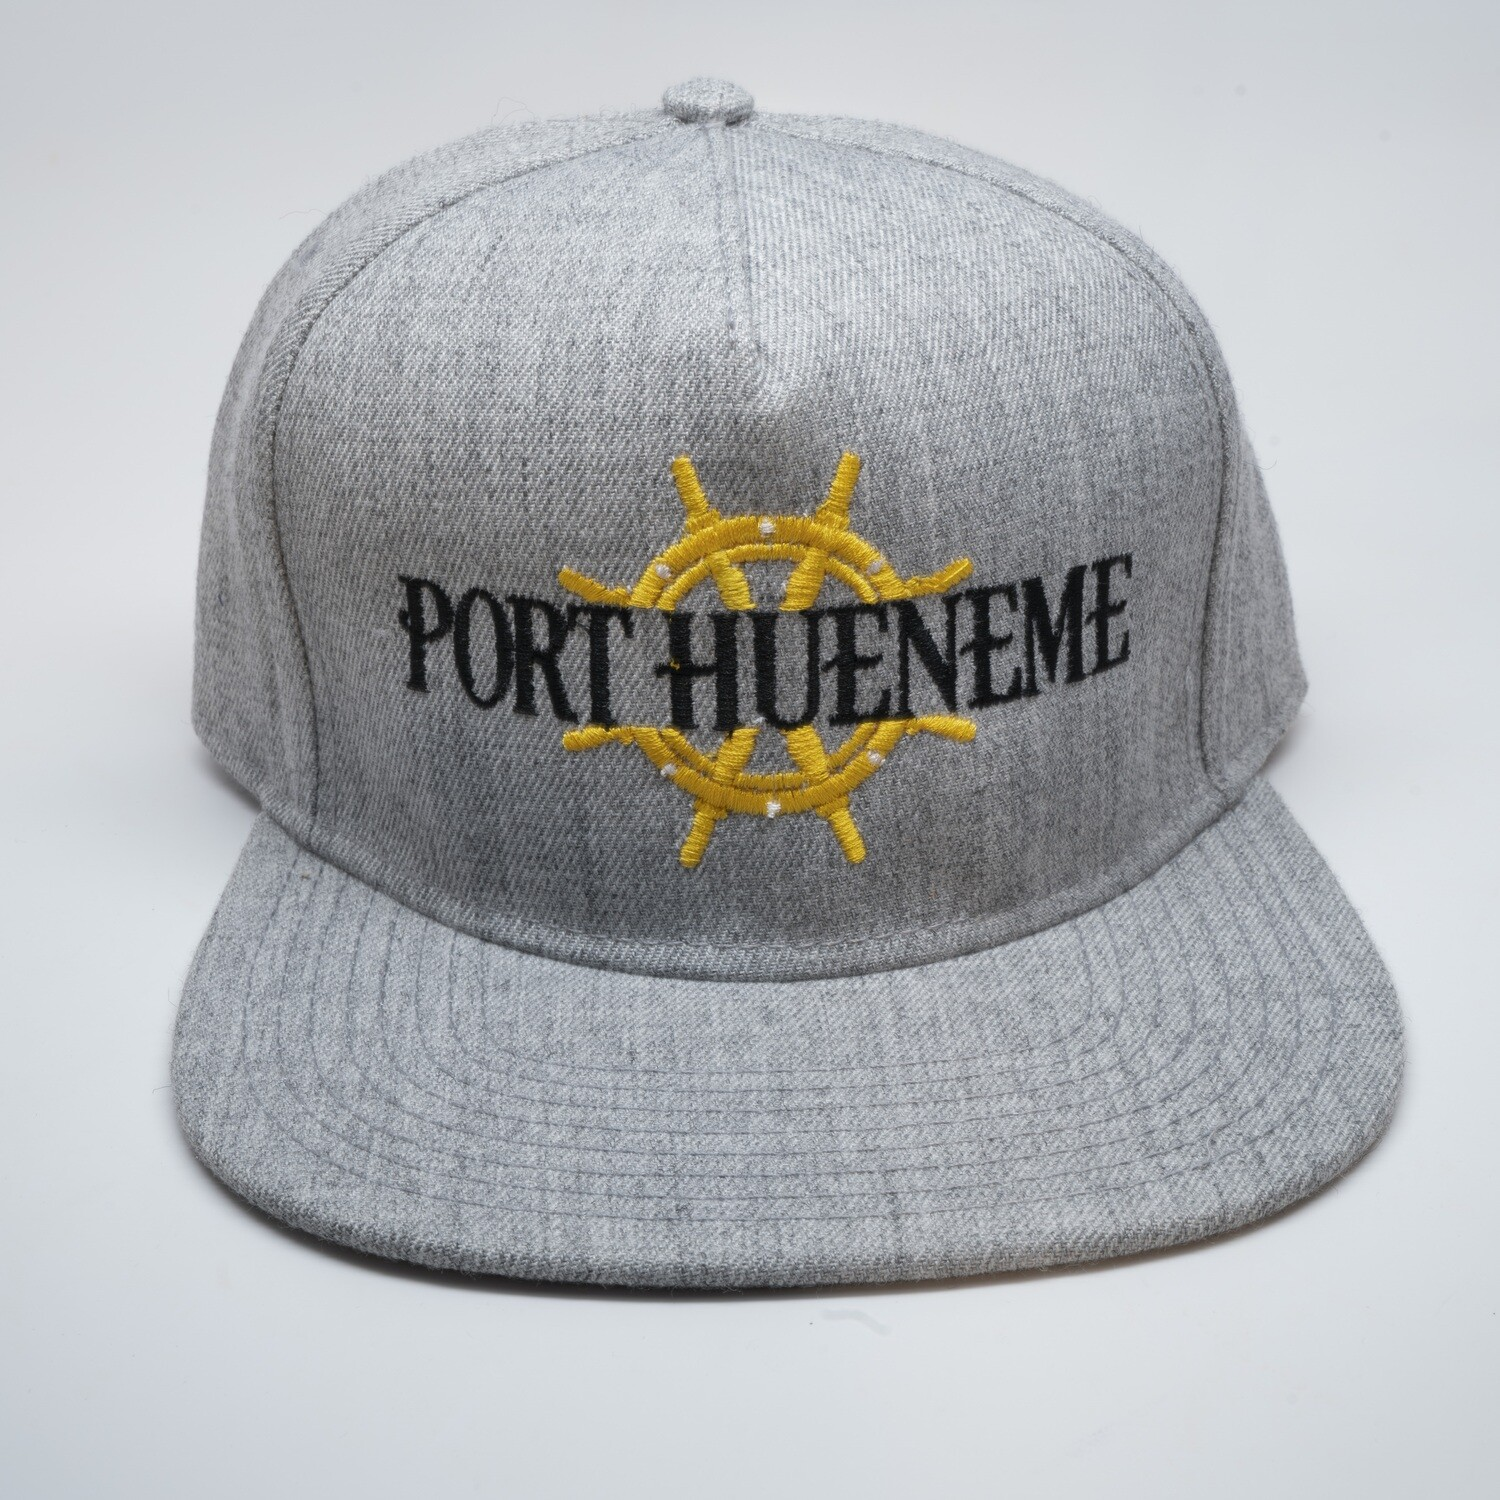 Port Hueneme Captains Wheel Hat